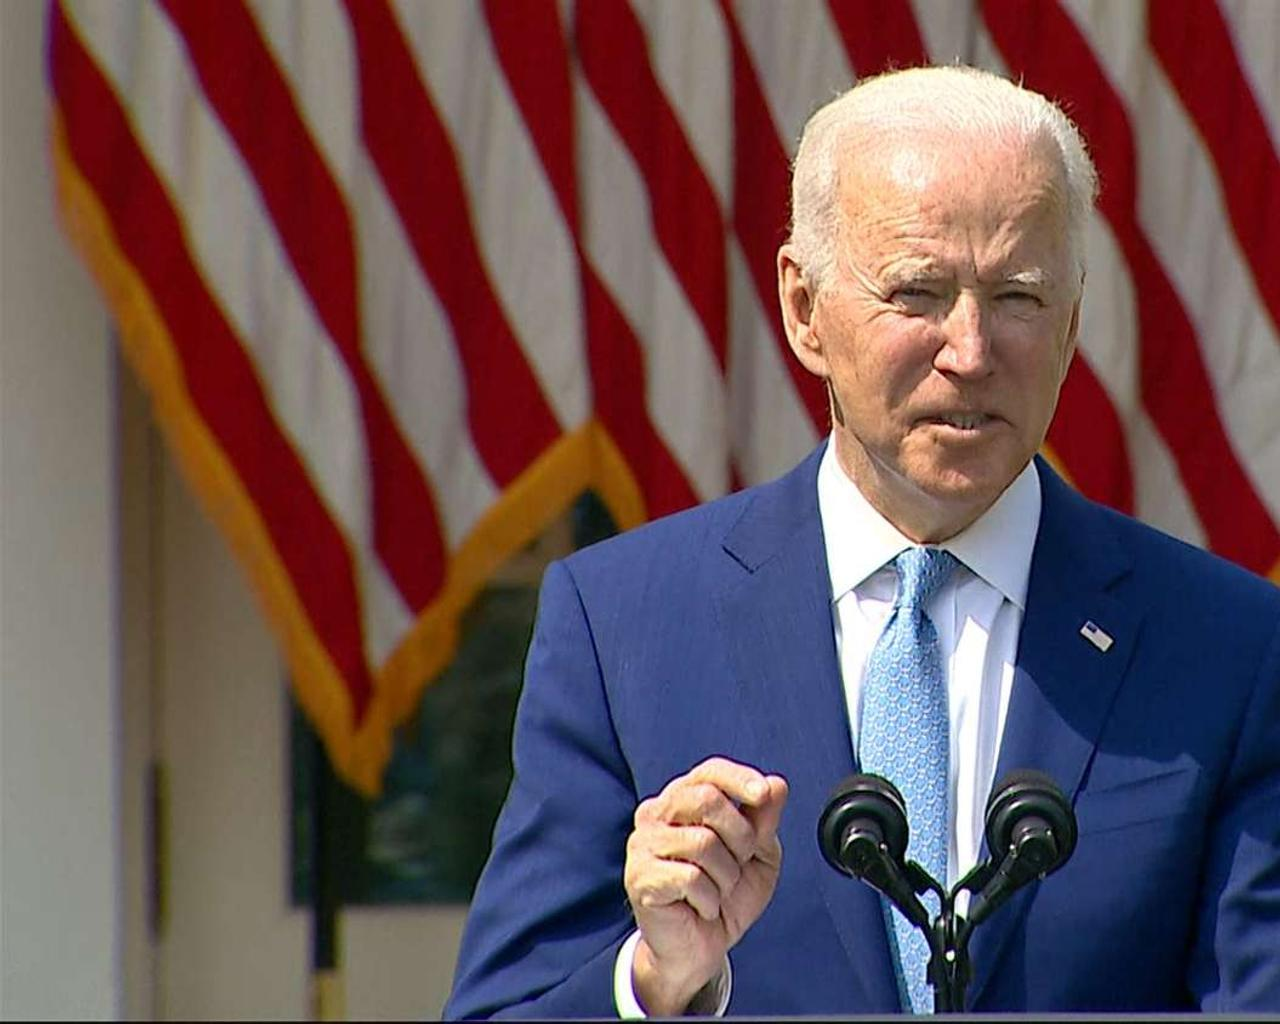 Biden looks to stem 'ghost guns,' unveils other steps to curb gun violence 'epidemic'